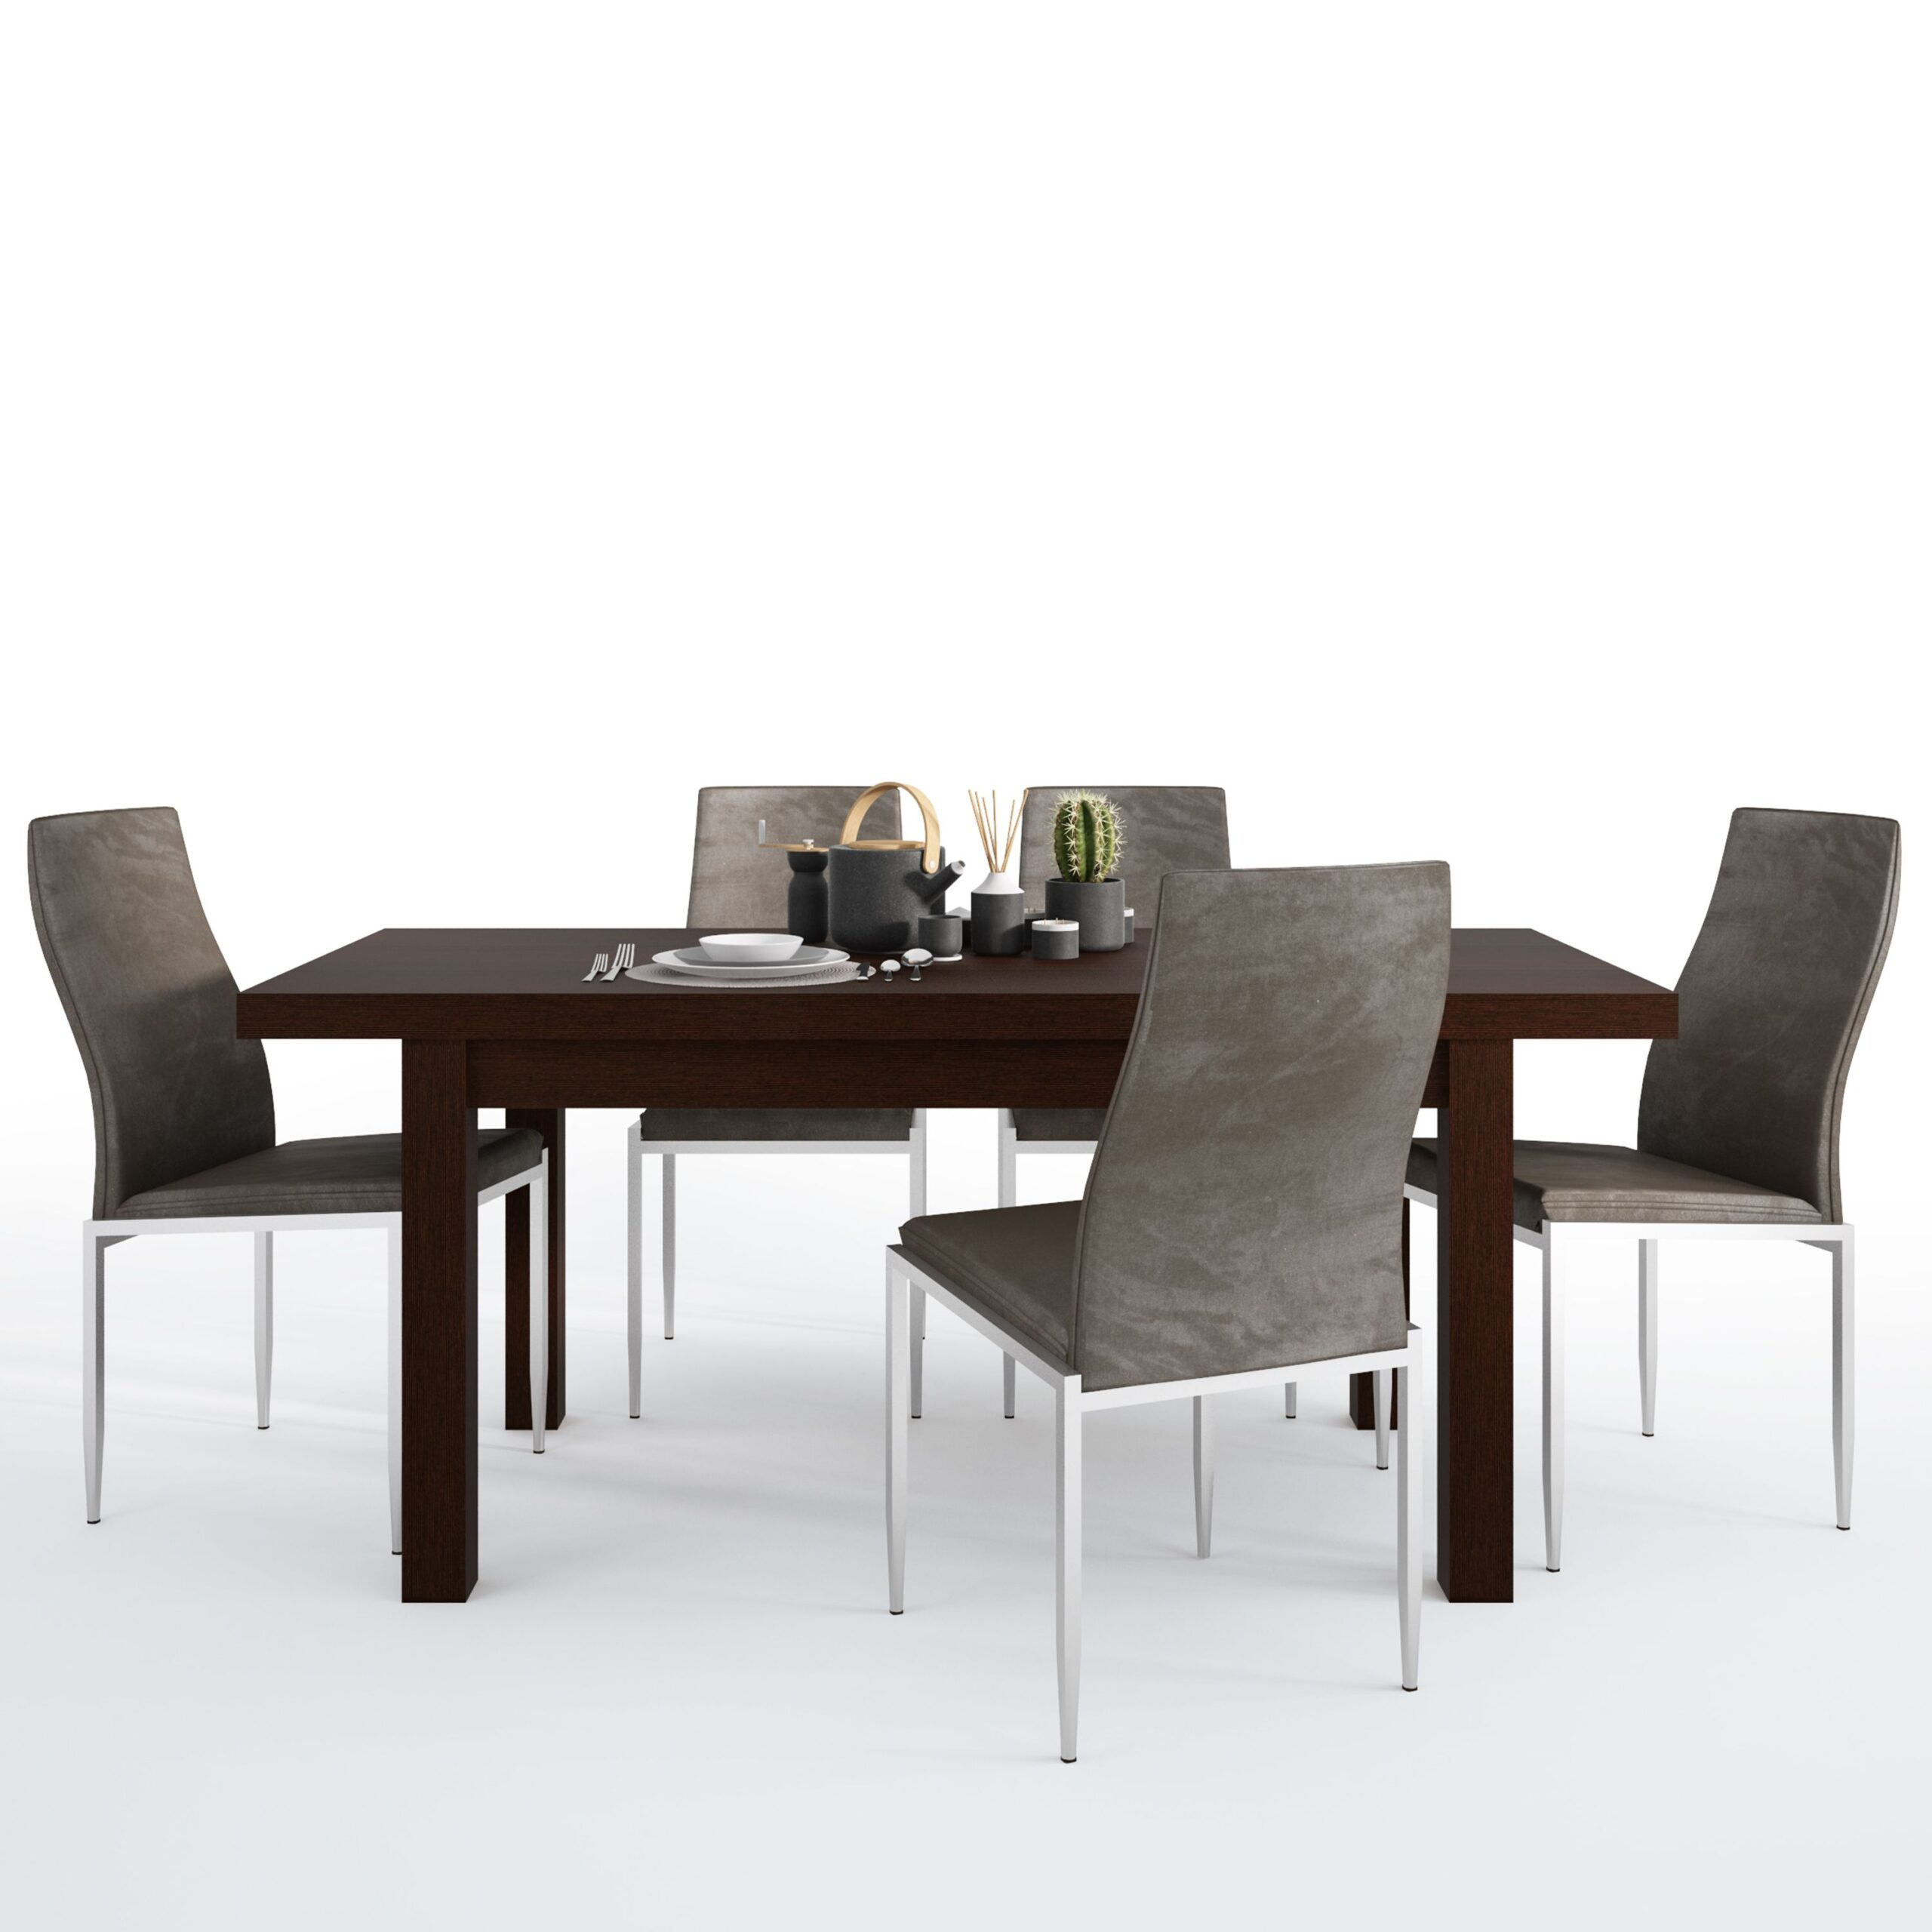 Jello Dining set package Jello Extending Dining Table in Dark Mahogany + 4 Lillie High Back Chair Dark Brown